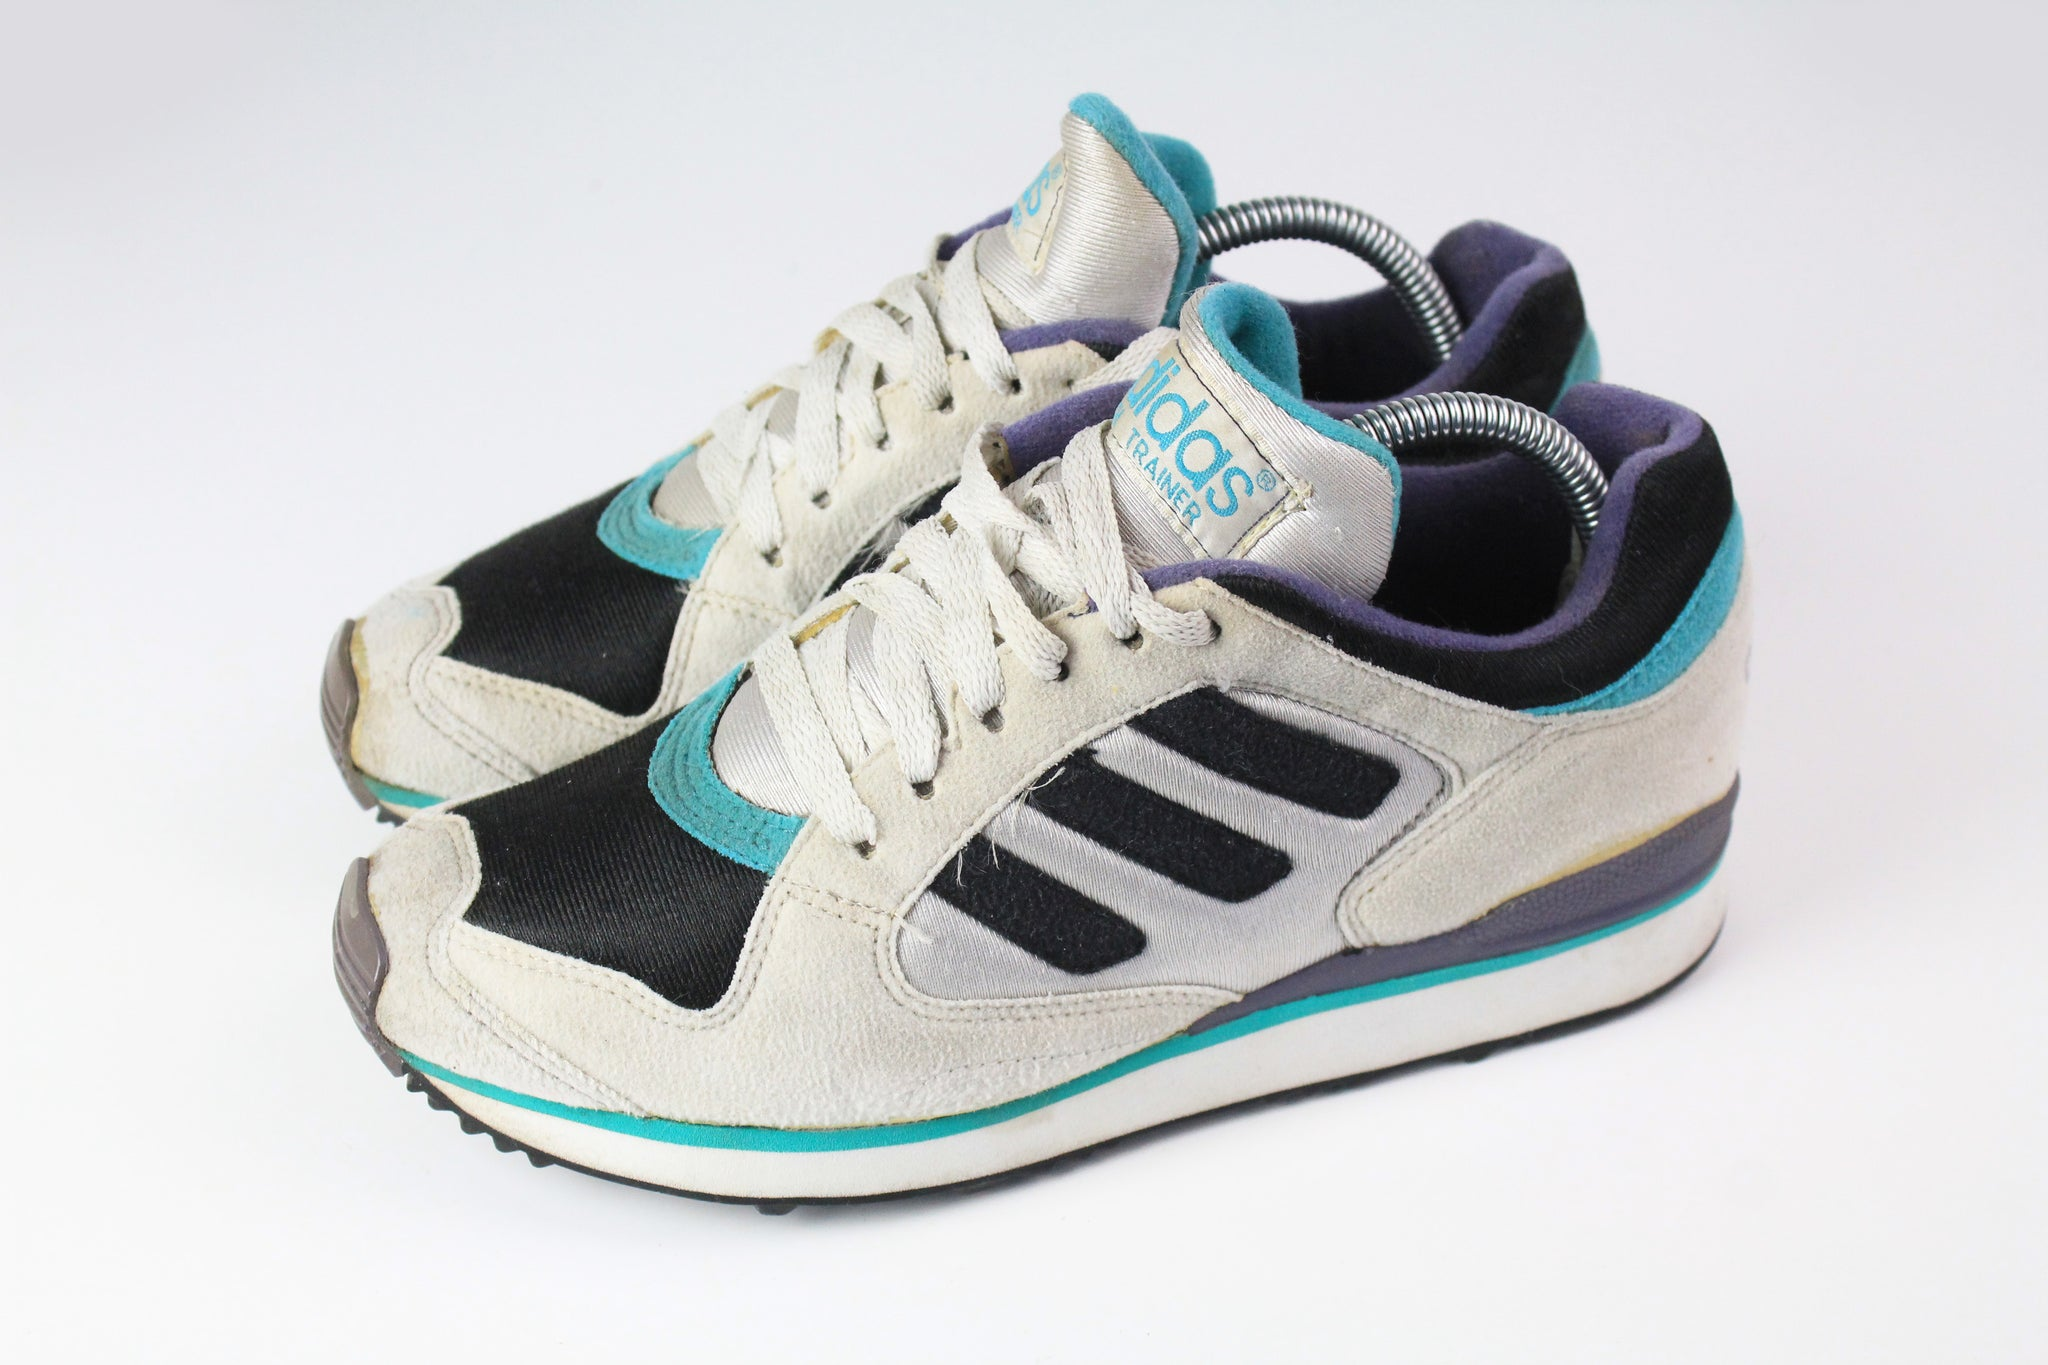 Vintage Adidas Tech Trainer Sneakers EUR 39